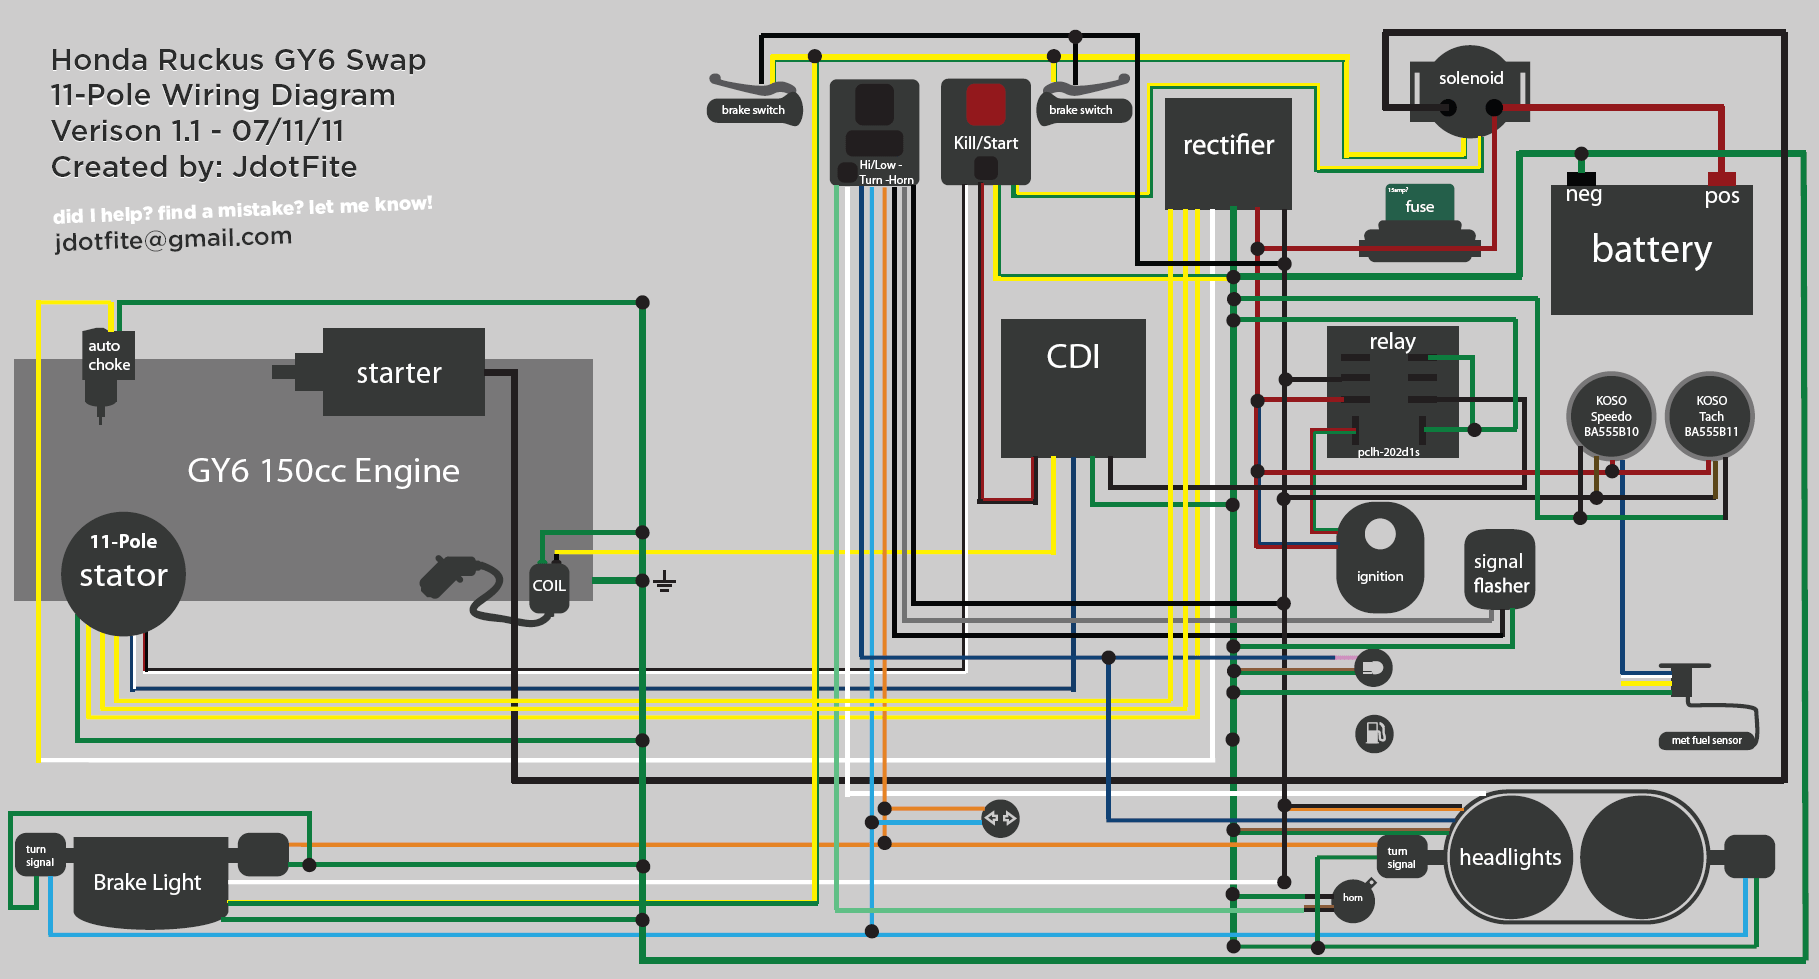 ruckus gy6 wiring diagram gy6 ac cdi wiring diagram gy6 150 wiring diagram \u2022 wiring diagrams 7 Pin CDI Wiring Diagram at pacquiaovsvargaslive.co